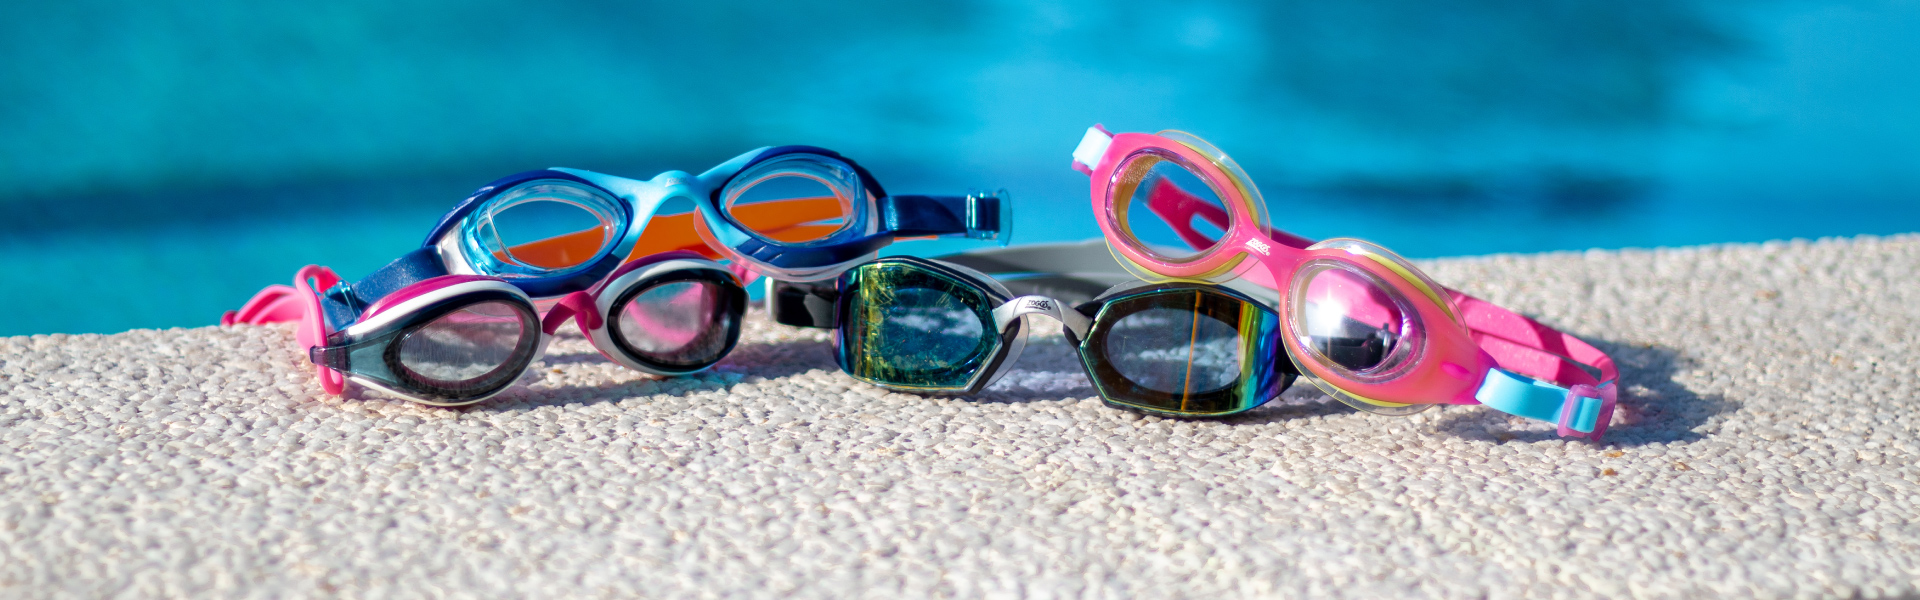 Introducing New Little Twist Goggles for Kids